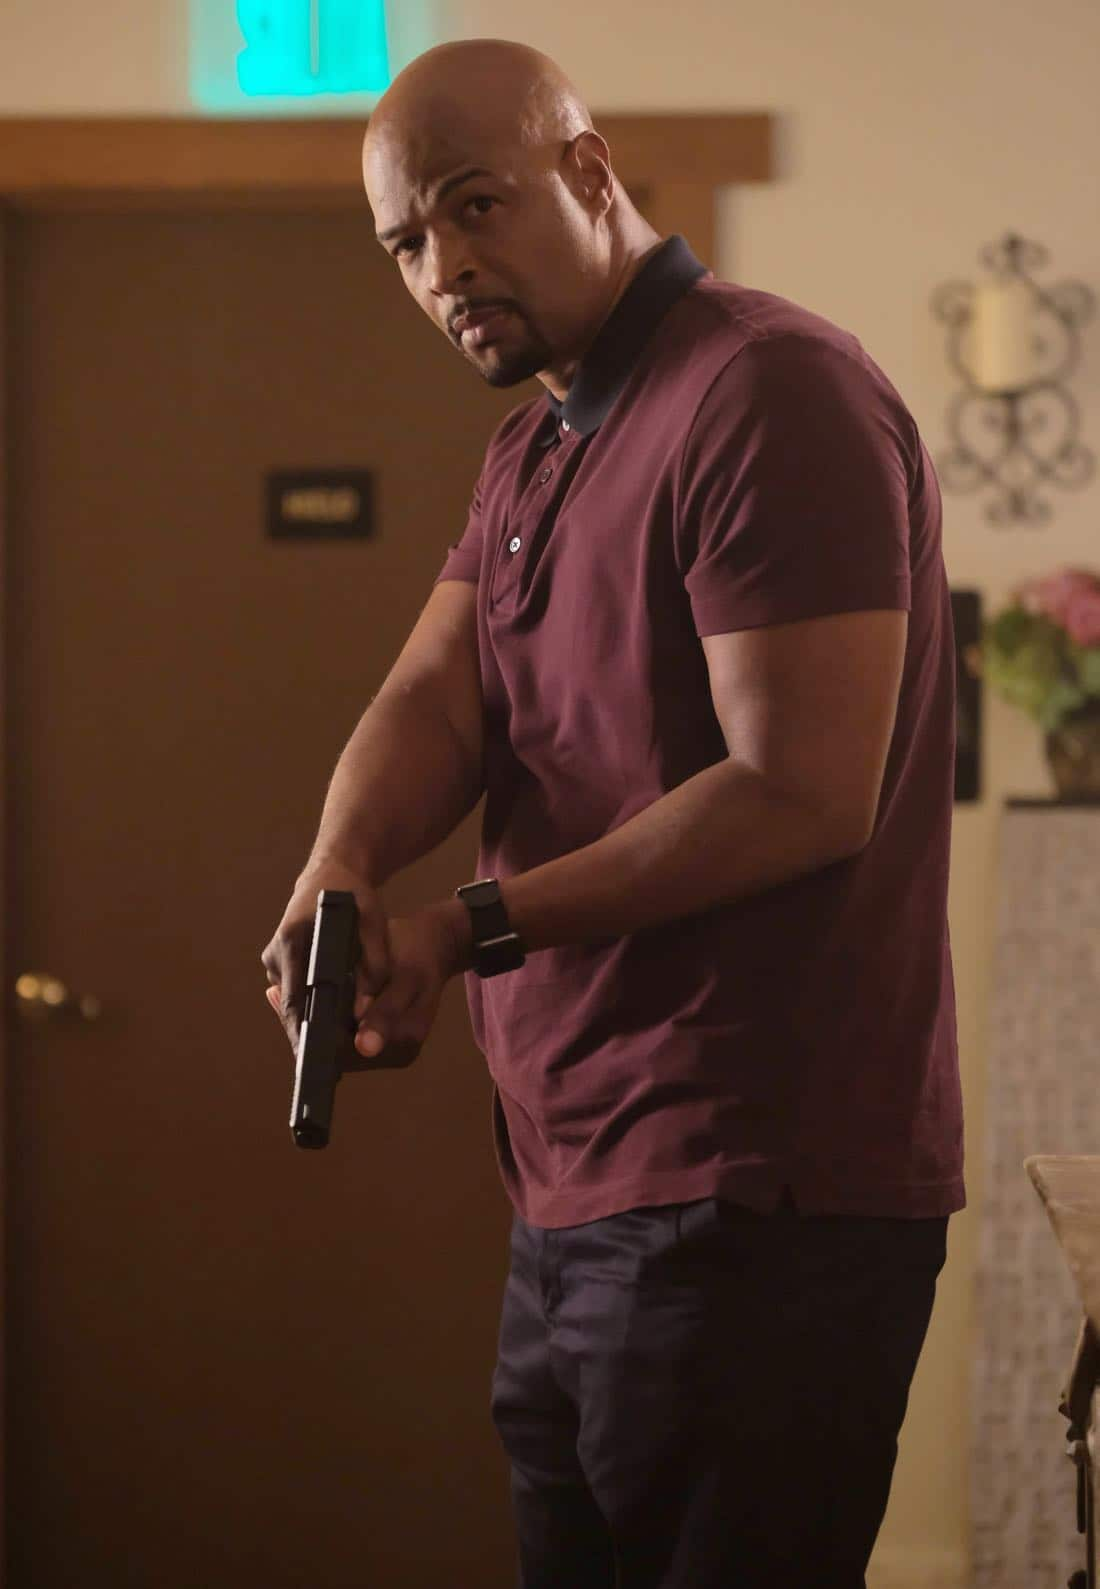 """LETHAL WEAPON: Damon Wayans in the """"El Gringo Loco"""" season two premiere episode of LETHAL WEAPON airing Tuesday, Sept. 26 (8:00-9:00 PM ET/PT) on FOX. ©2017 Fox Broadcasting Co. CR: Darren Michaels/FOX"""